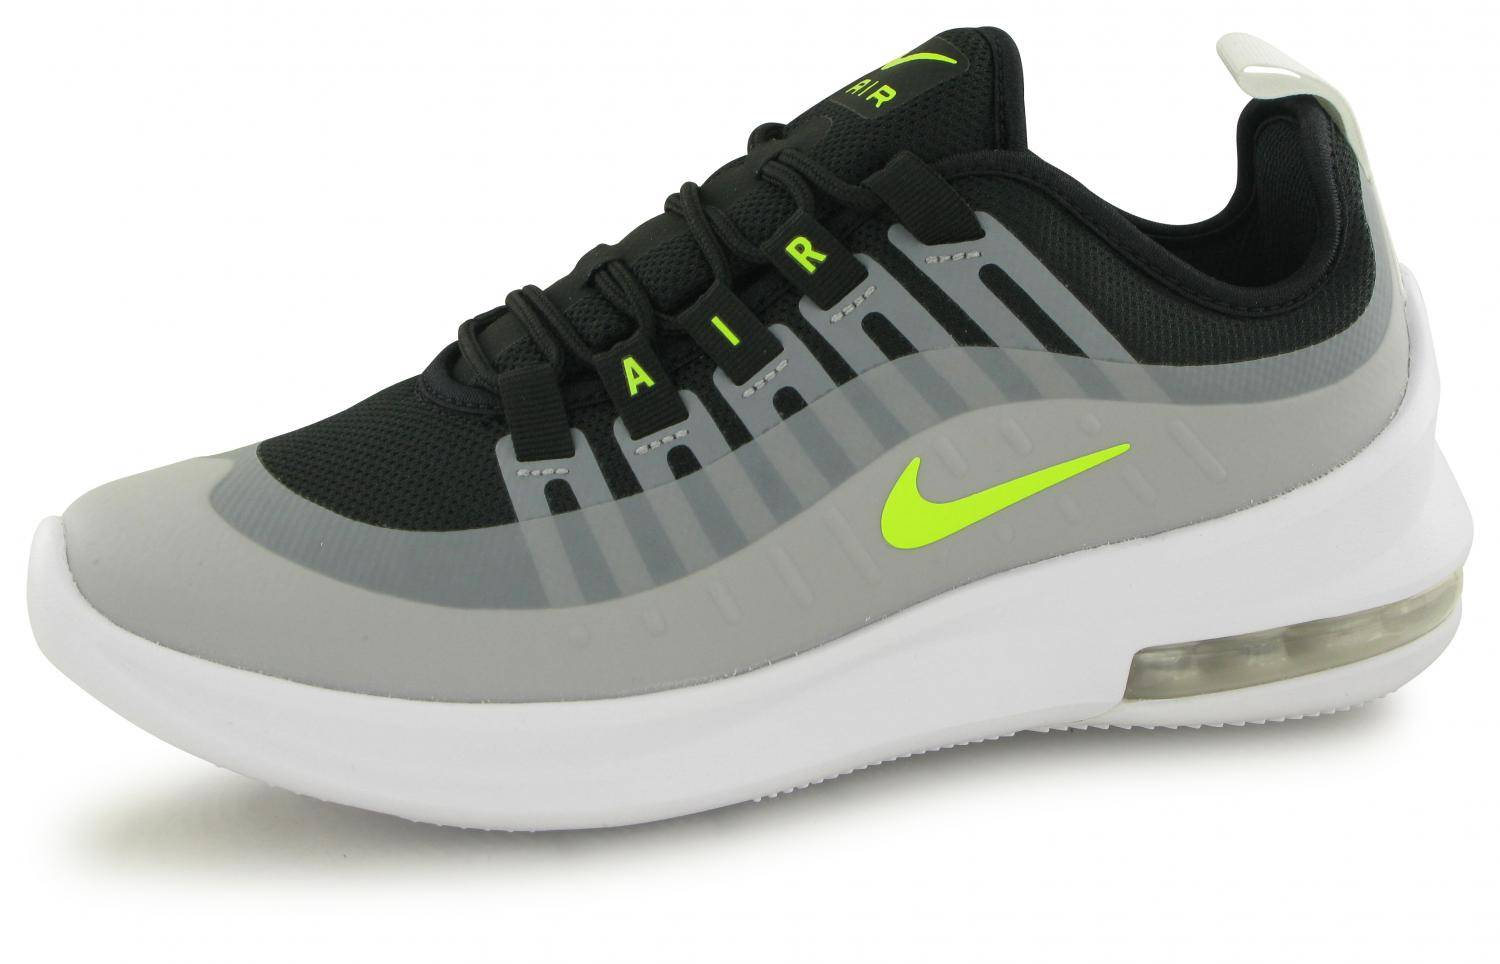 meilleures baskets a8d33 5f5a2 Nike Air Max Axis Noir / Gris / Jaune Junior